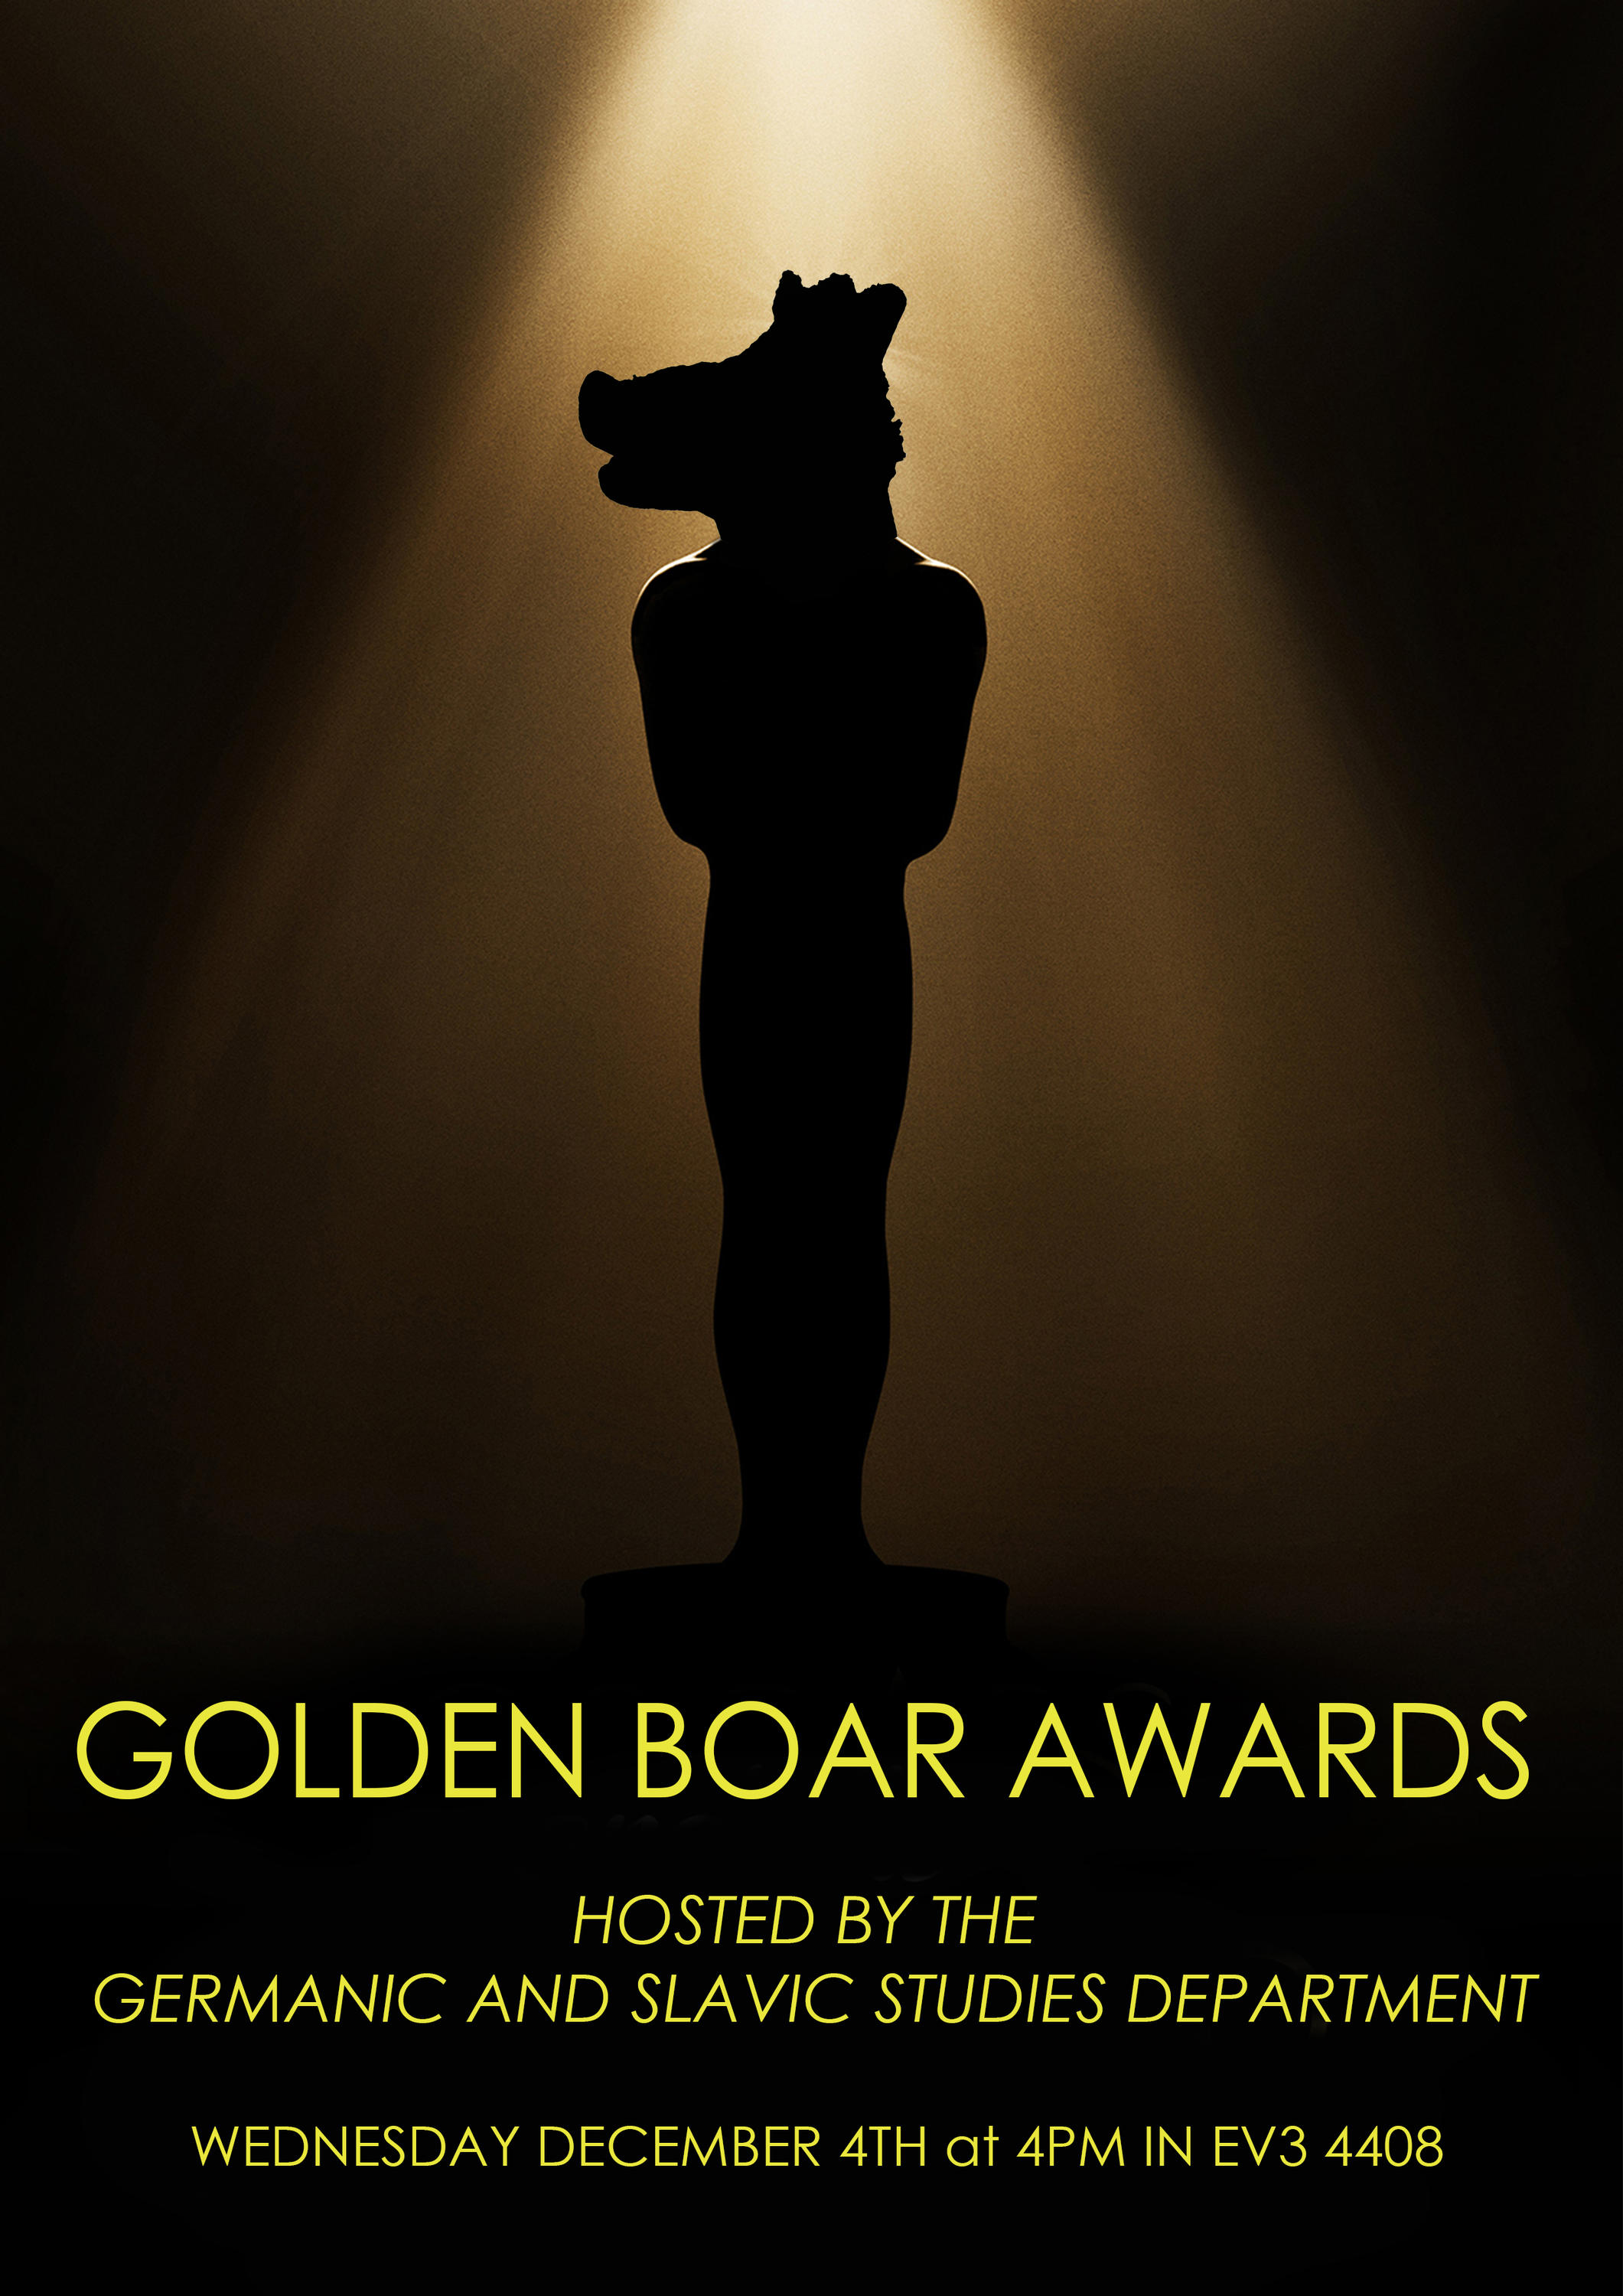 Golden Boar Award poster